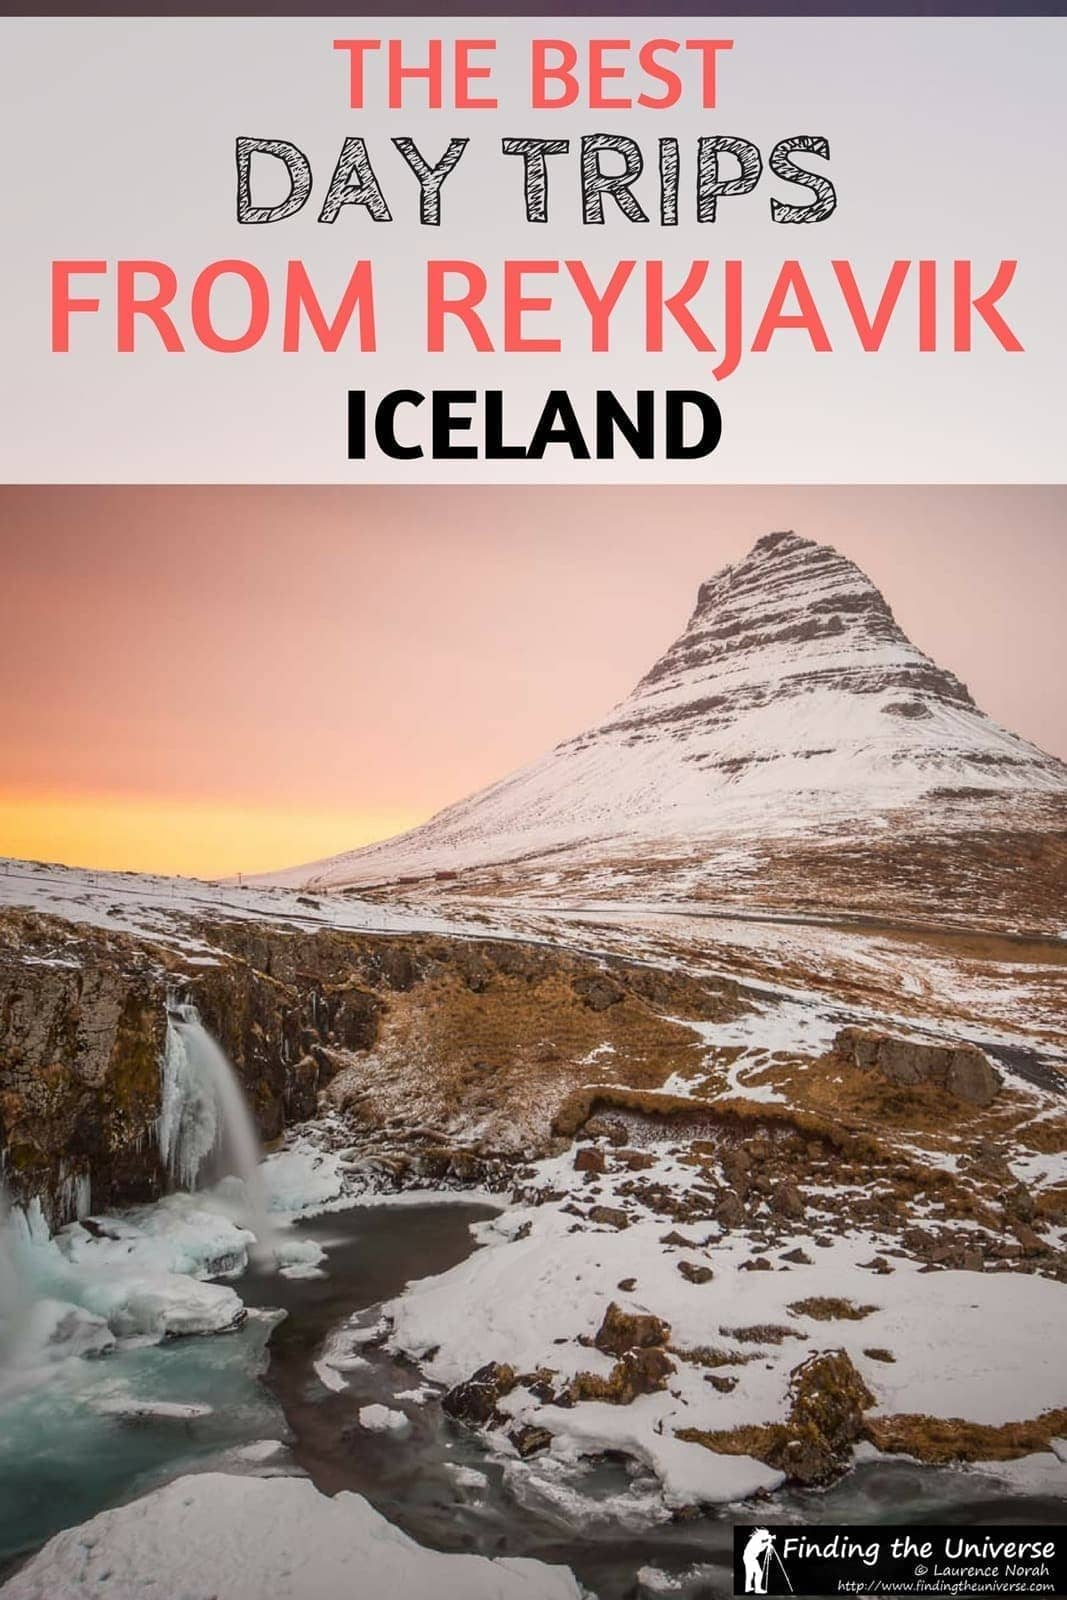 Day Trips from Reykjavik - A guide to the best day trips you can take from Reykjavik in Iceland to some of the countries most popular destinations including the Golden Circle, Snæfellsnes peninsula, Northern Lights and Blue Lagoon!